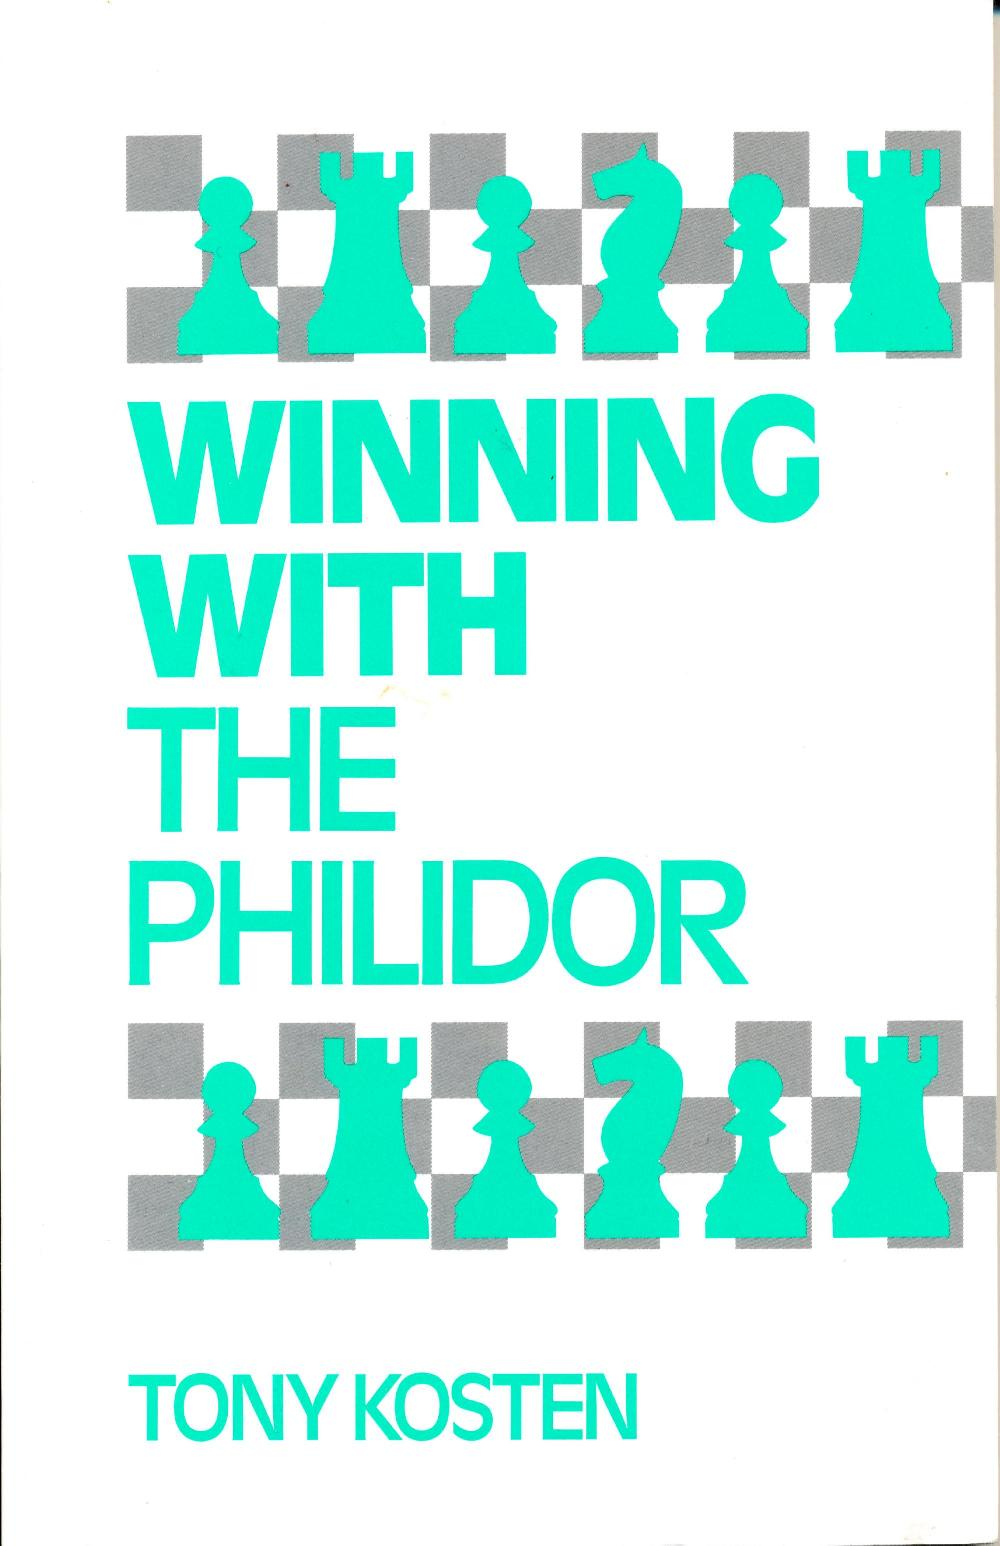 Winning with the Philidor, Batsford, 1992